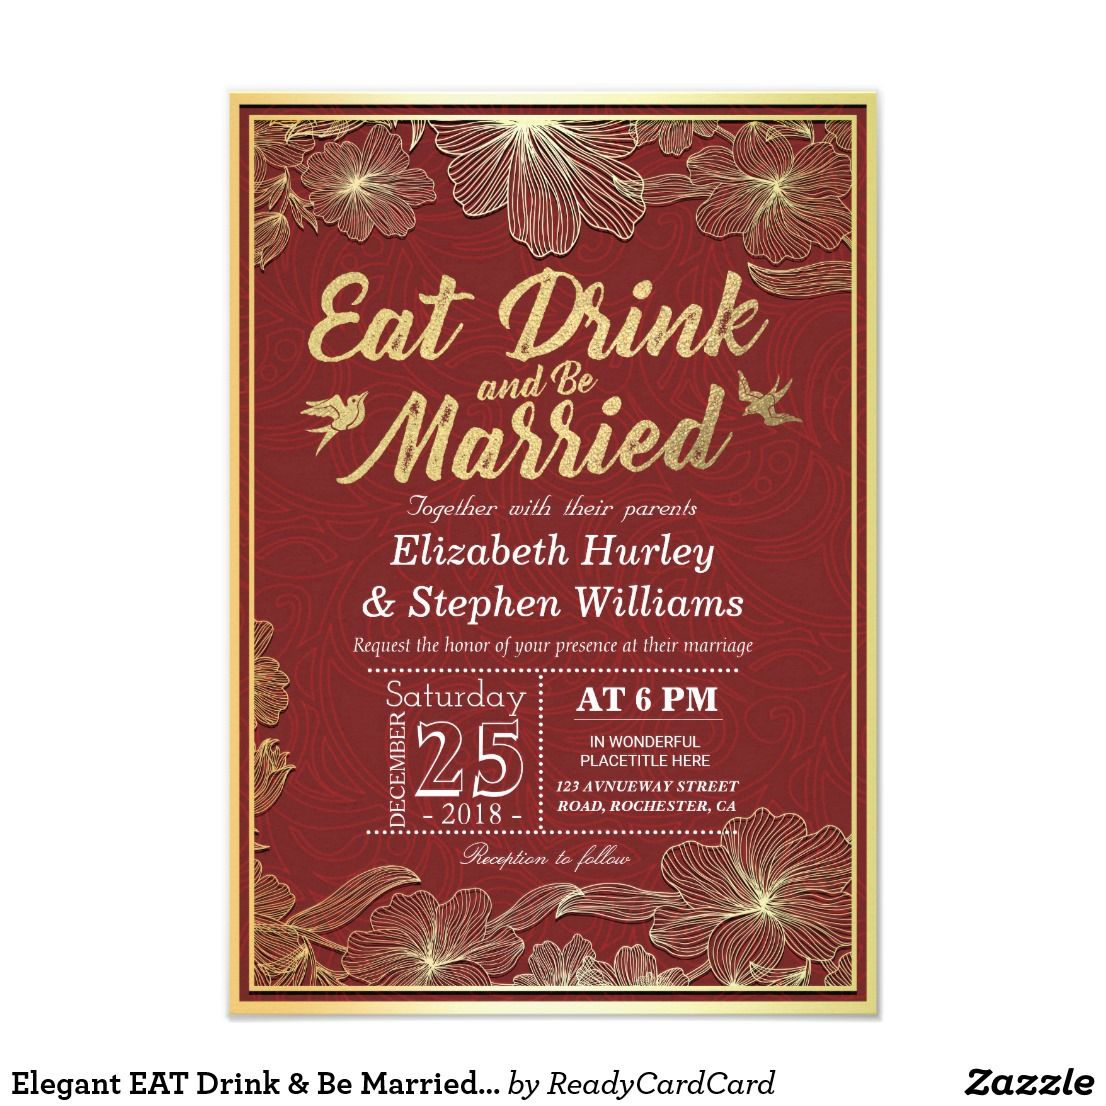 Elegant EAT Drink & Be Married Wedding Invitations | Pinterest ...